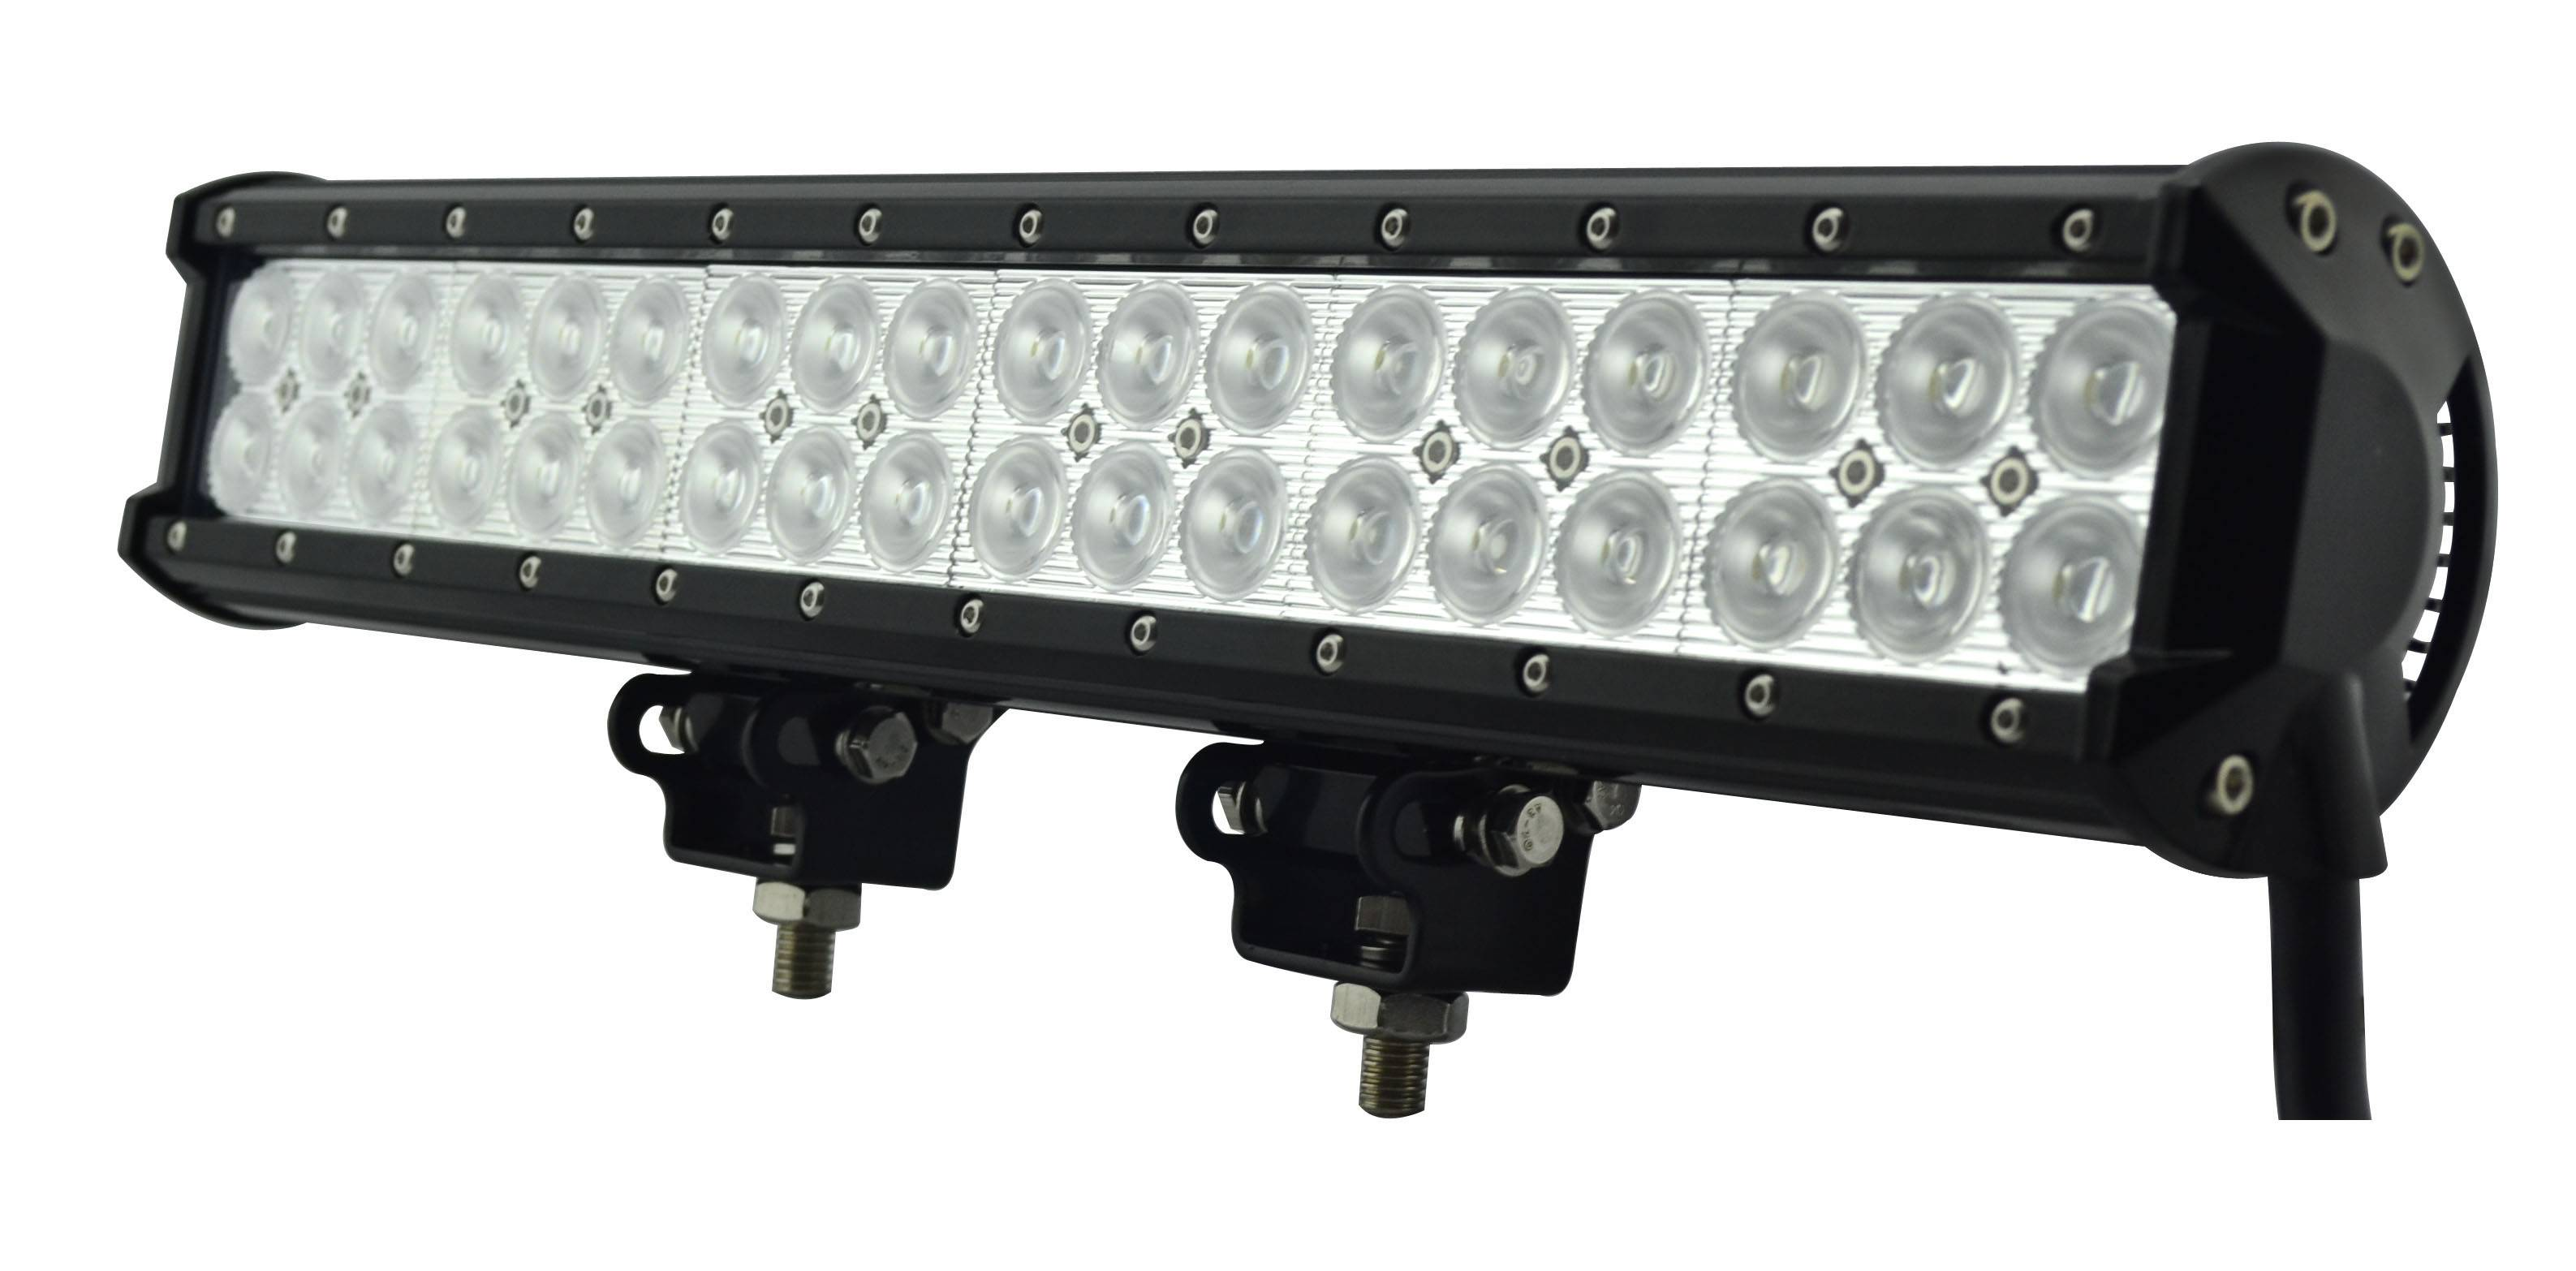 17 inch 108W CREE Comob Work Light Bar